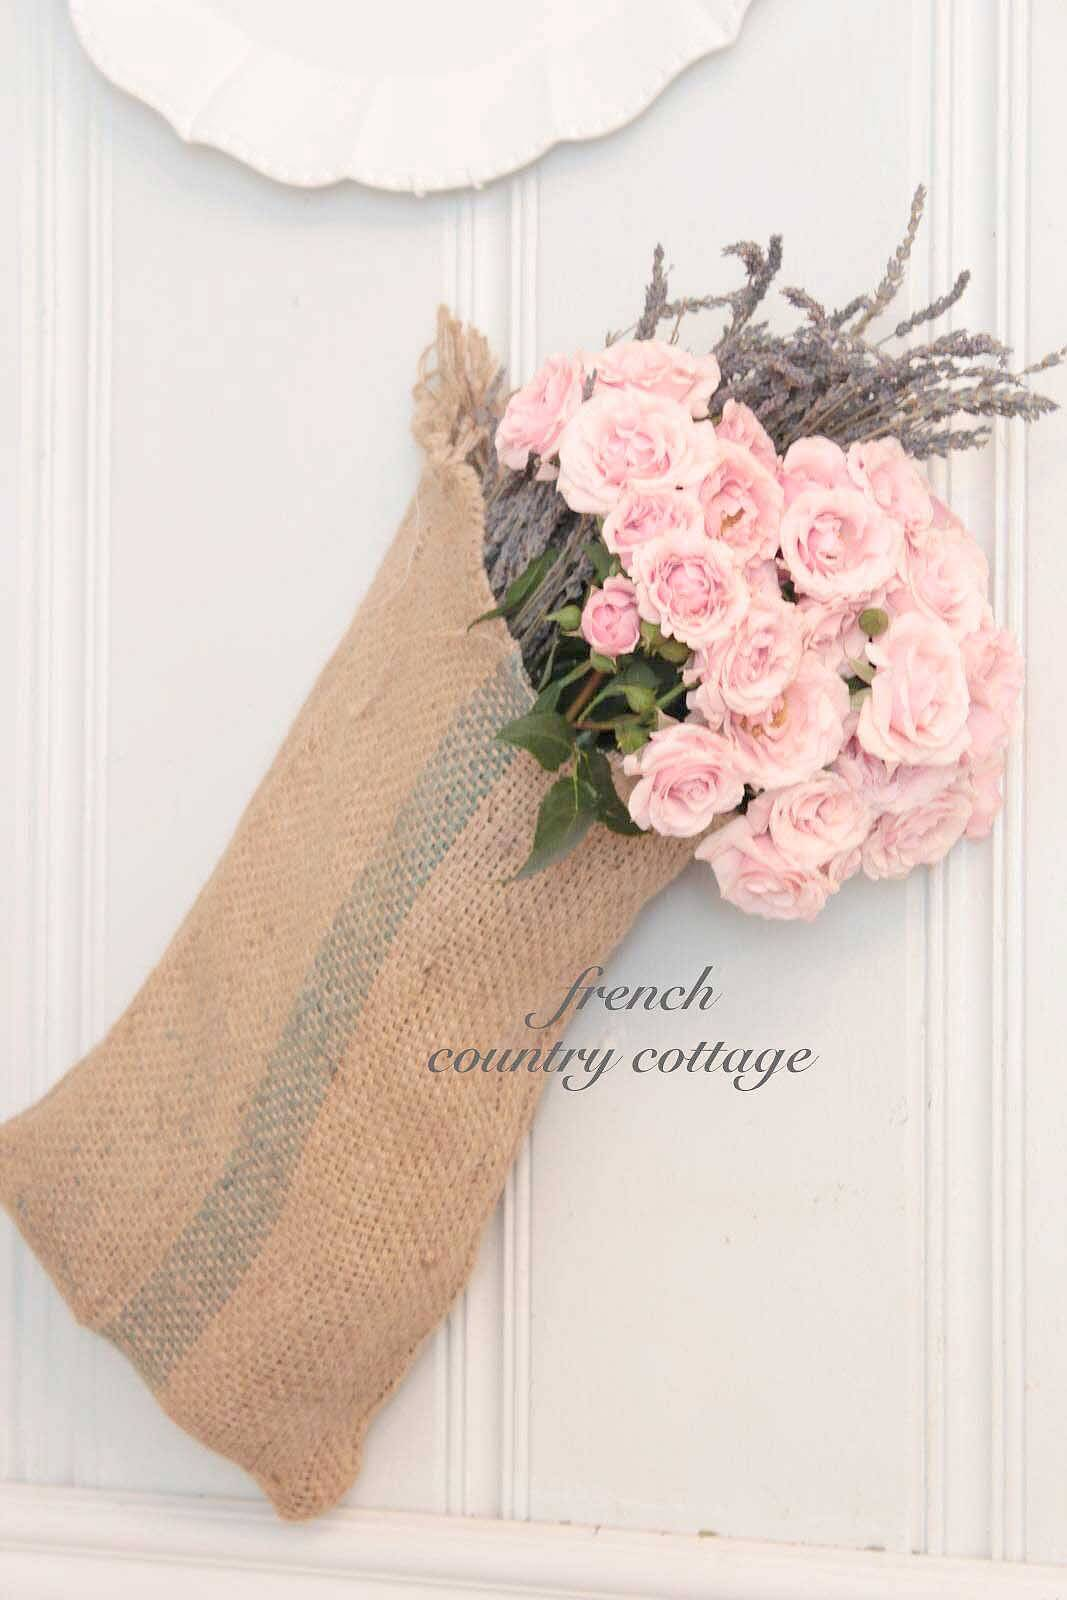 Easy DIY Burlap Sack Bouquet Display